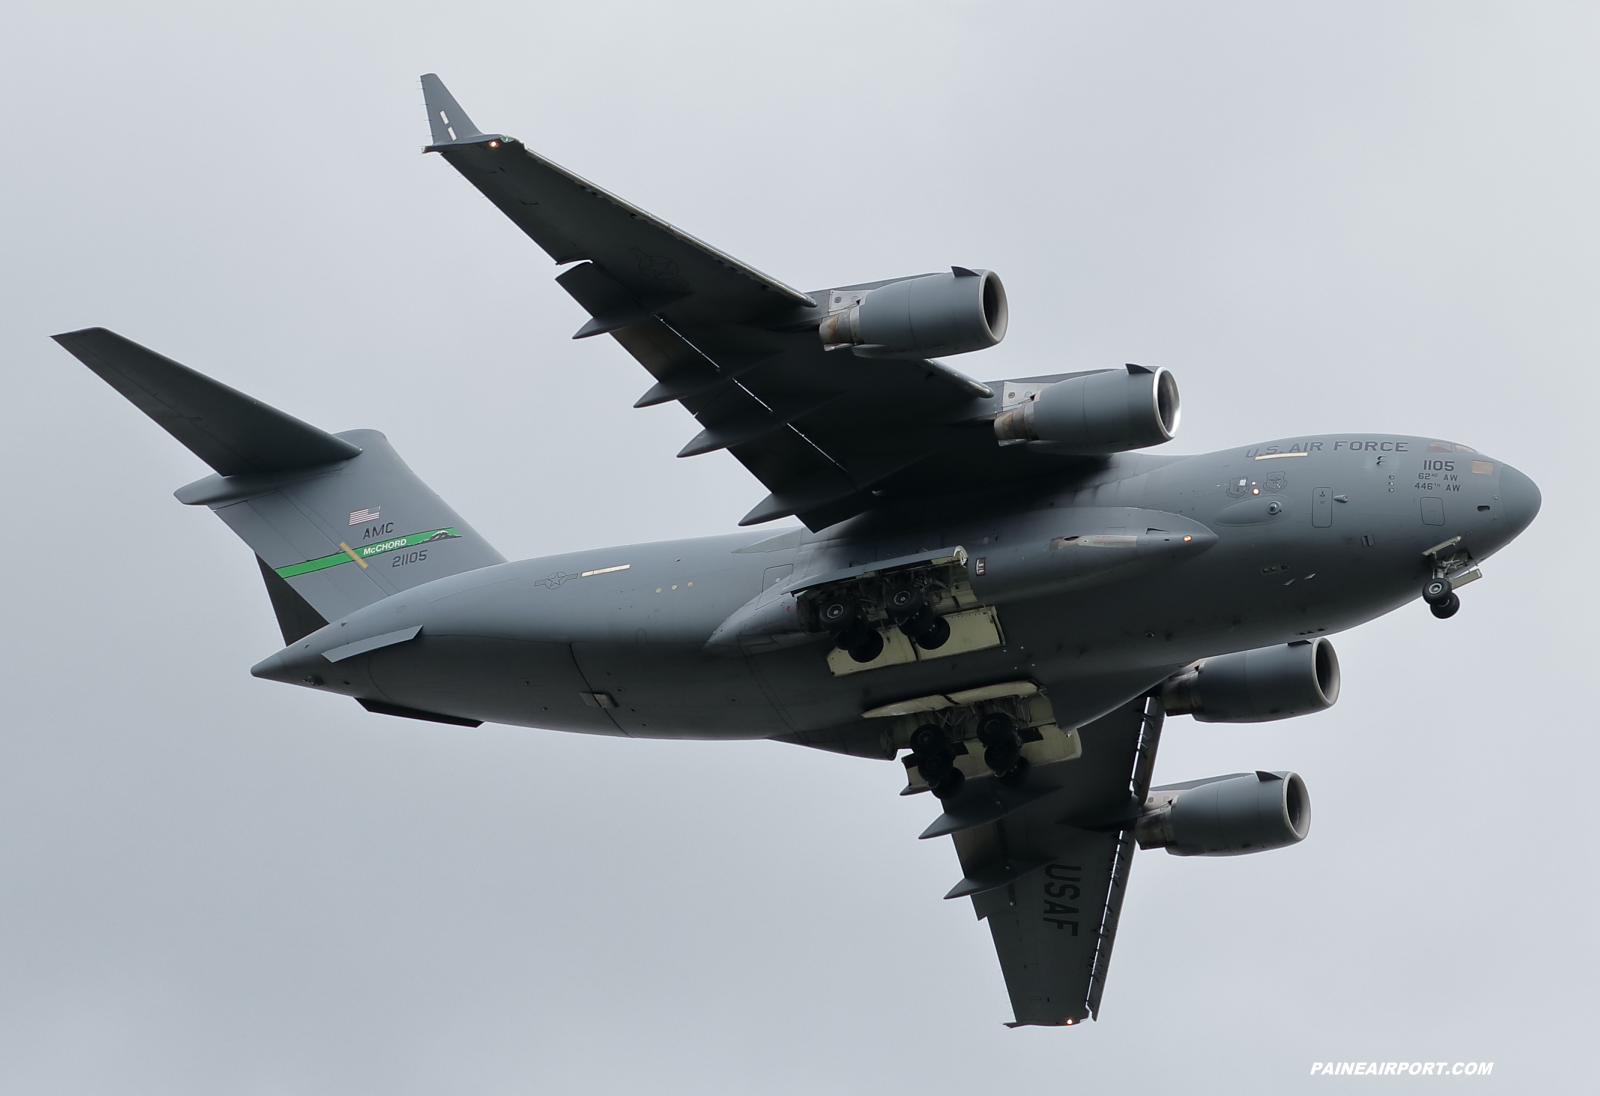 C-17A 02-1105 at Paine Field